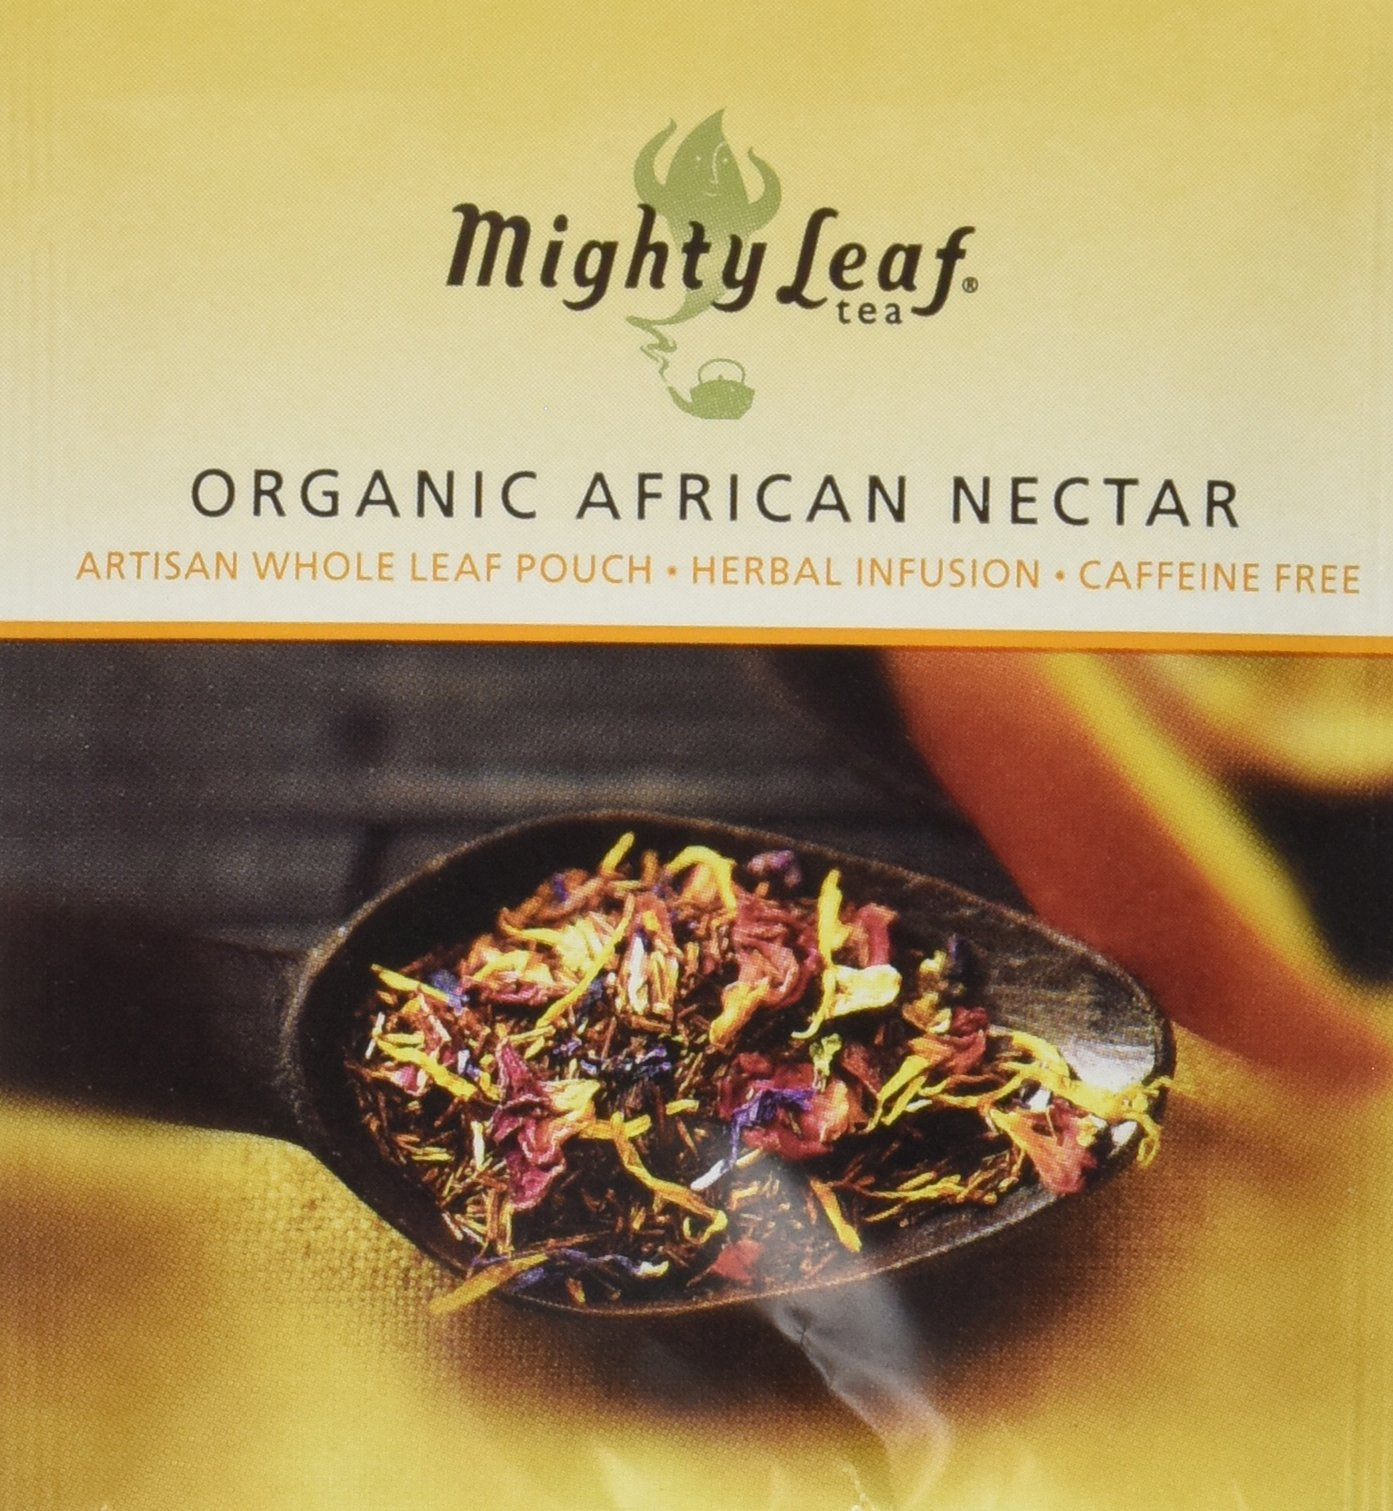 Mighty Leaf Organic African Nectar Tea, 100 Tea Pouches by Mighty Leaf Tea (Image #1)